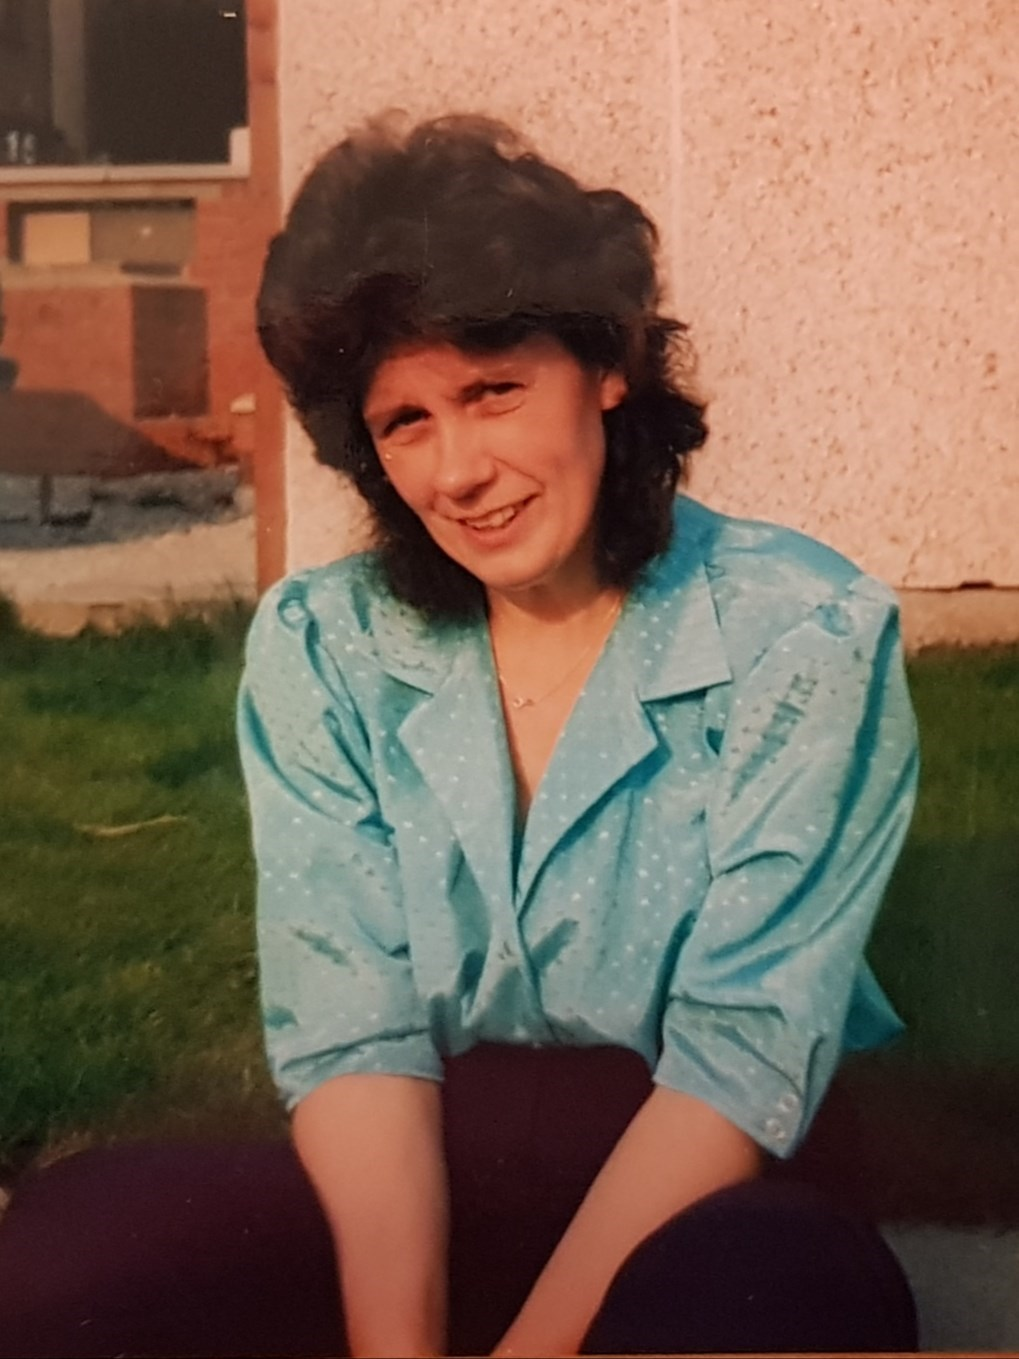 1990 before attacking Barry's garden